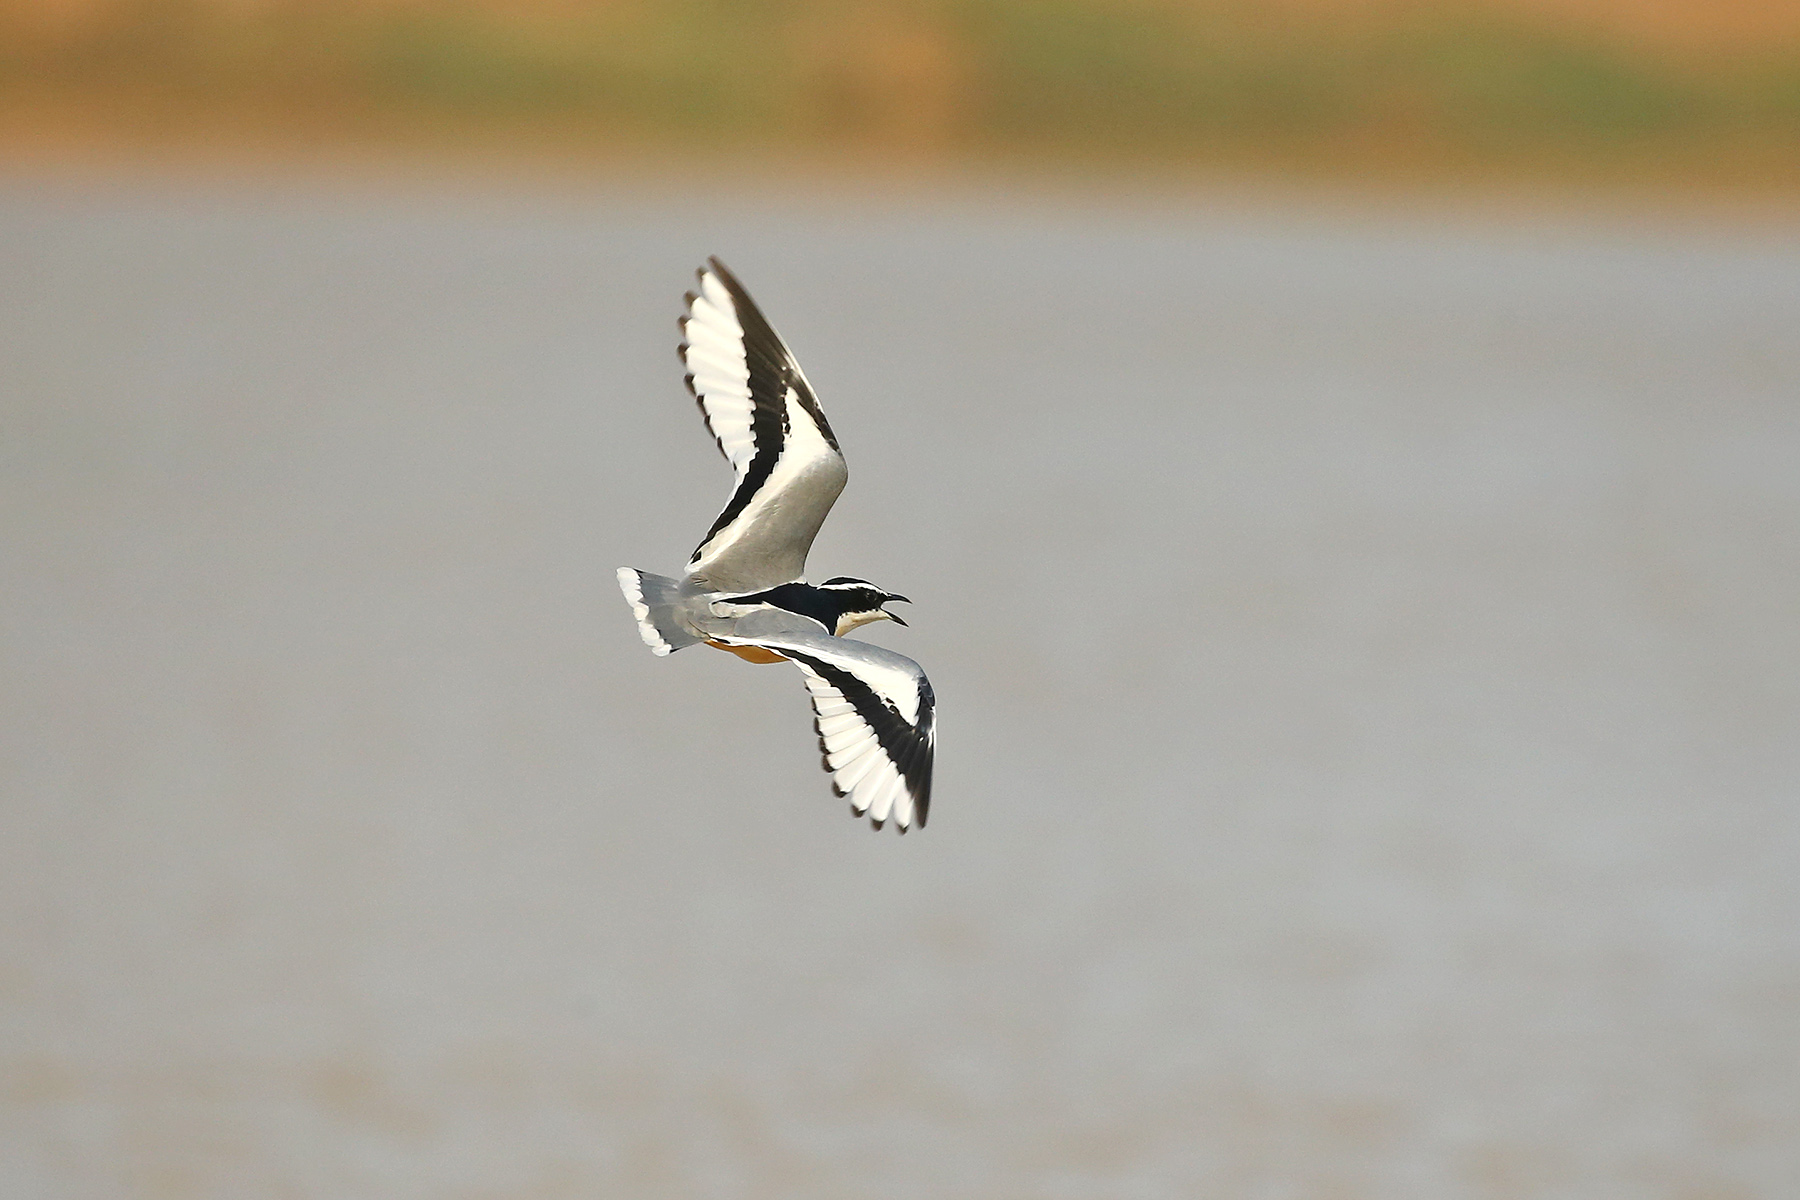 Egyptian Plover in Ghana (image by Janos Olah)